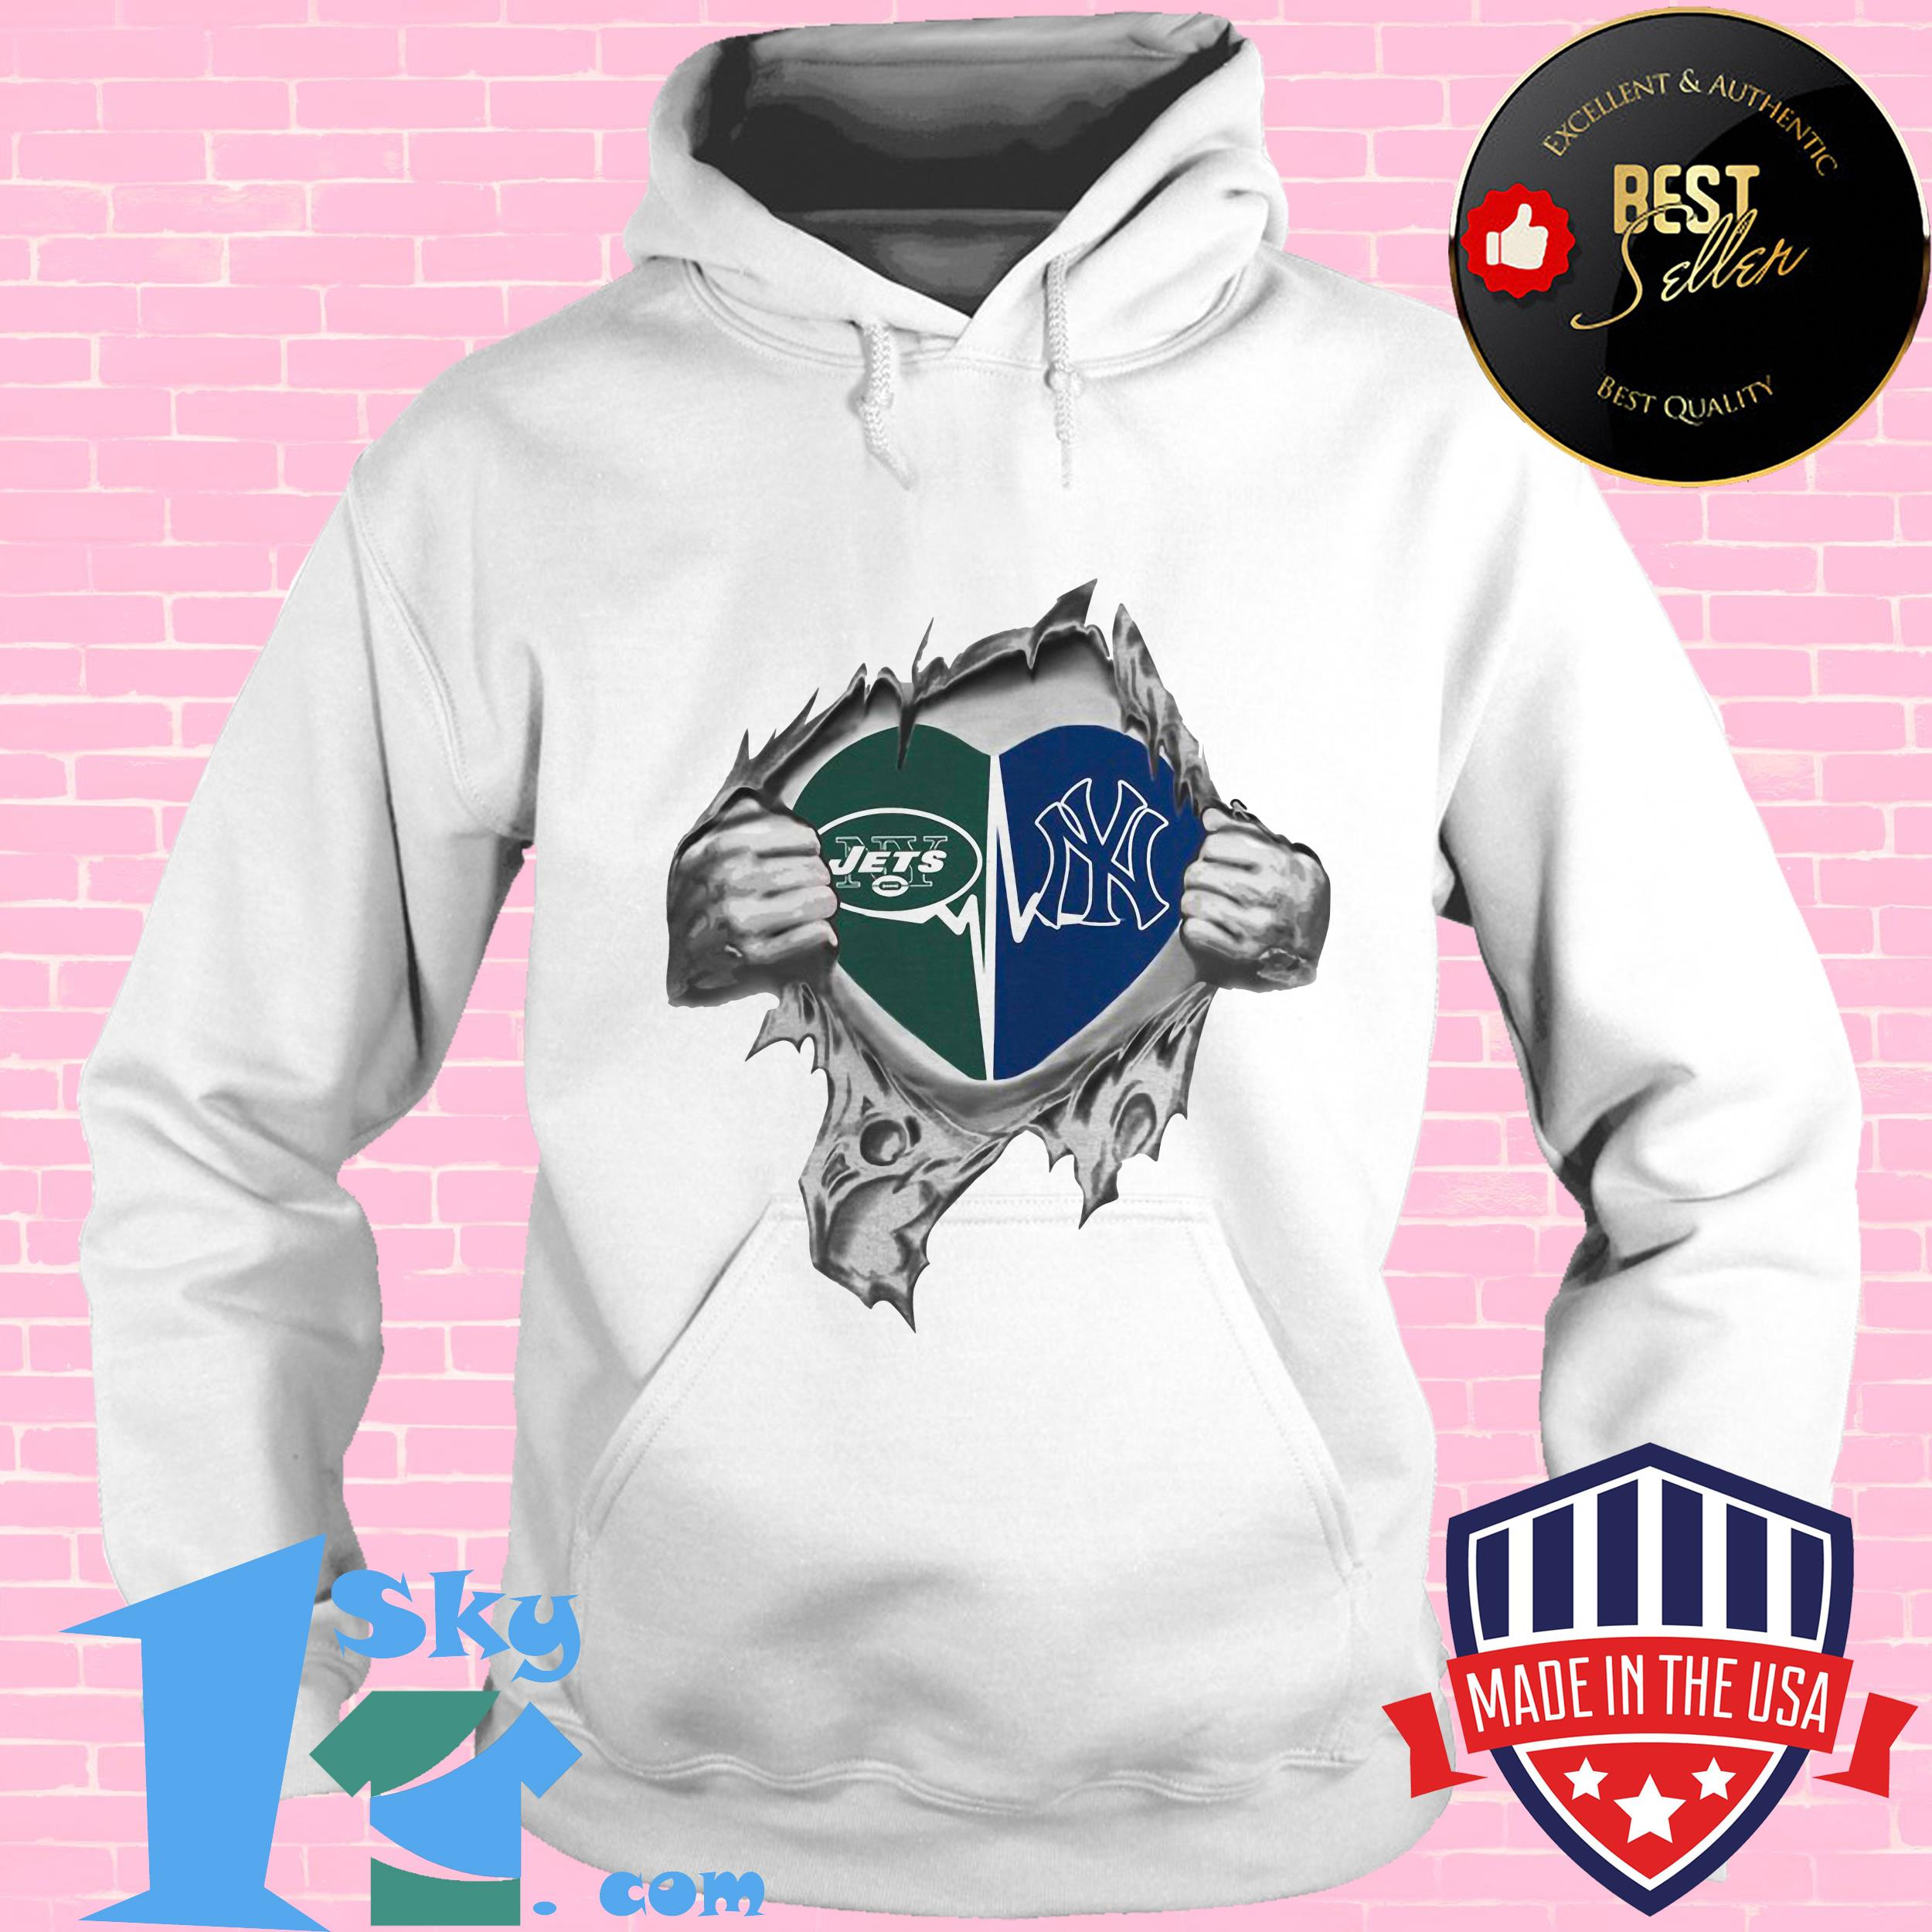 jets yankees its in my heart inside me hoodie - Jets Yankees It's In My Heart Inside Me shirt